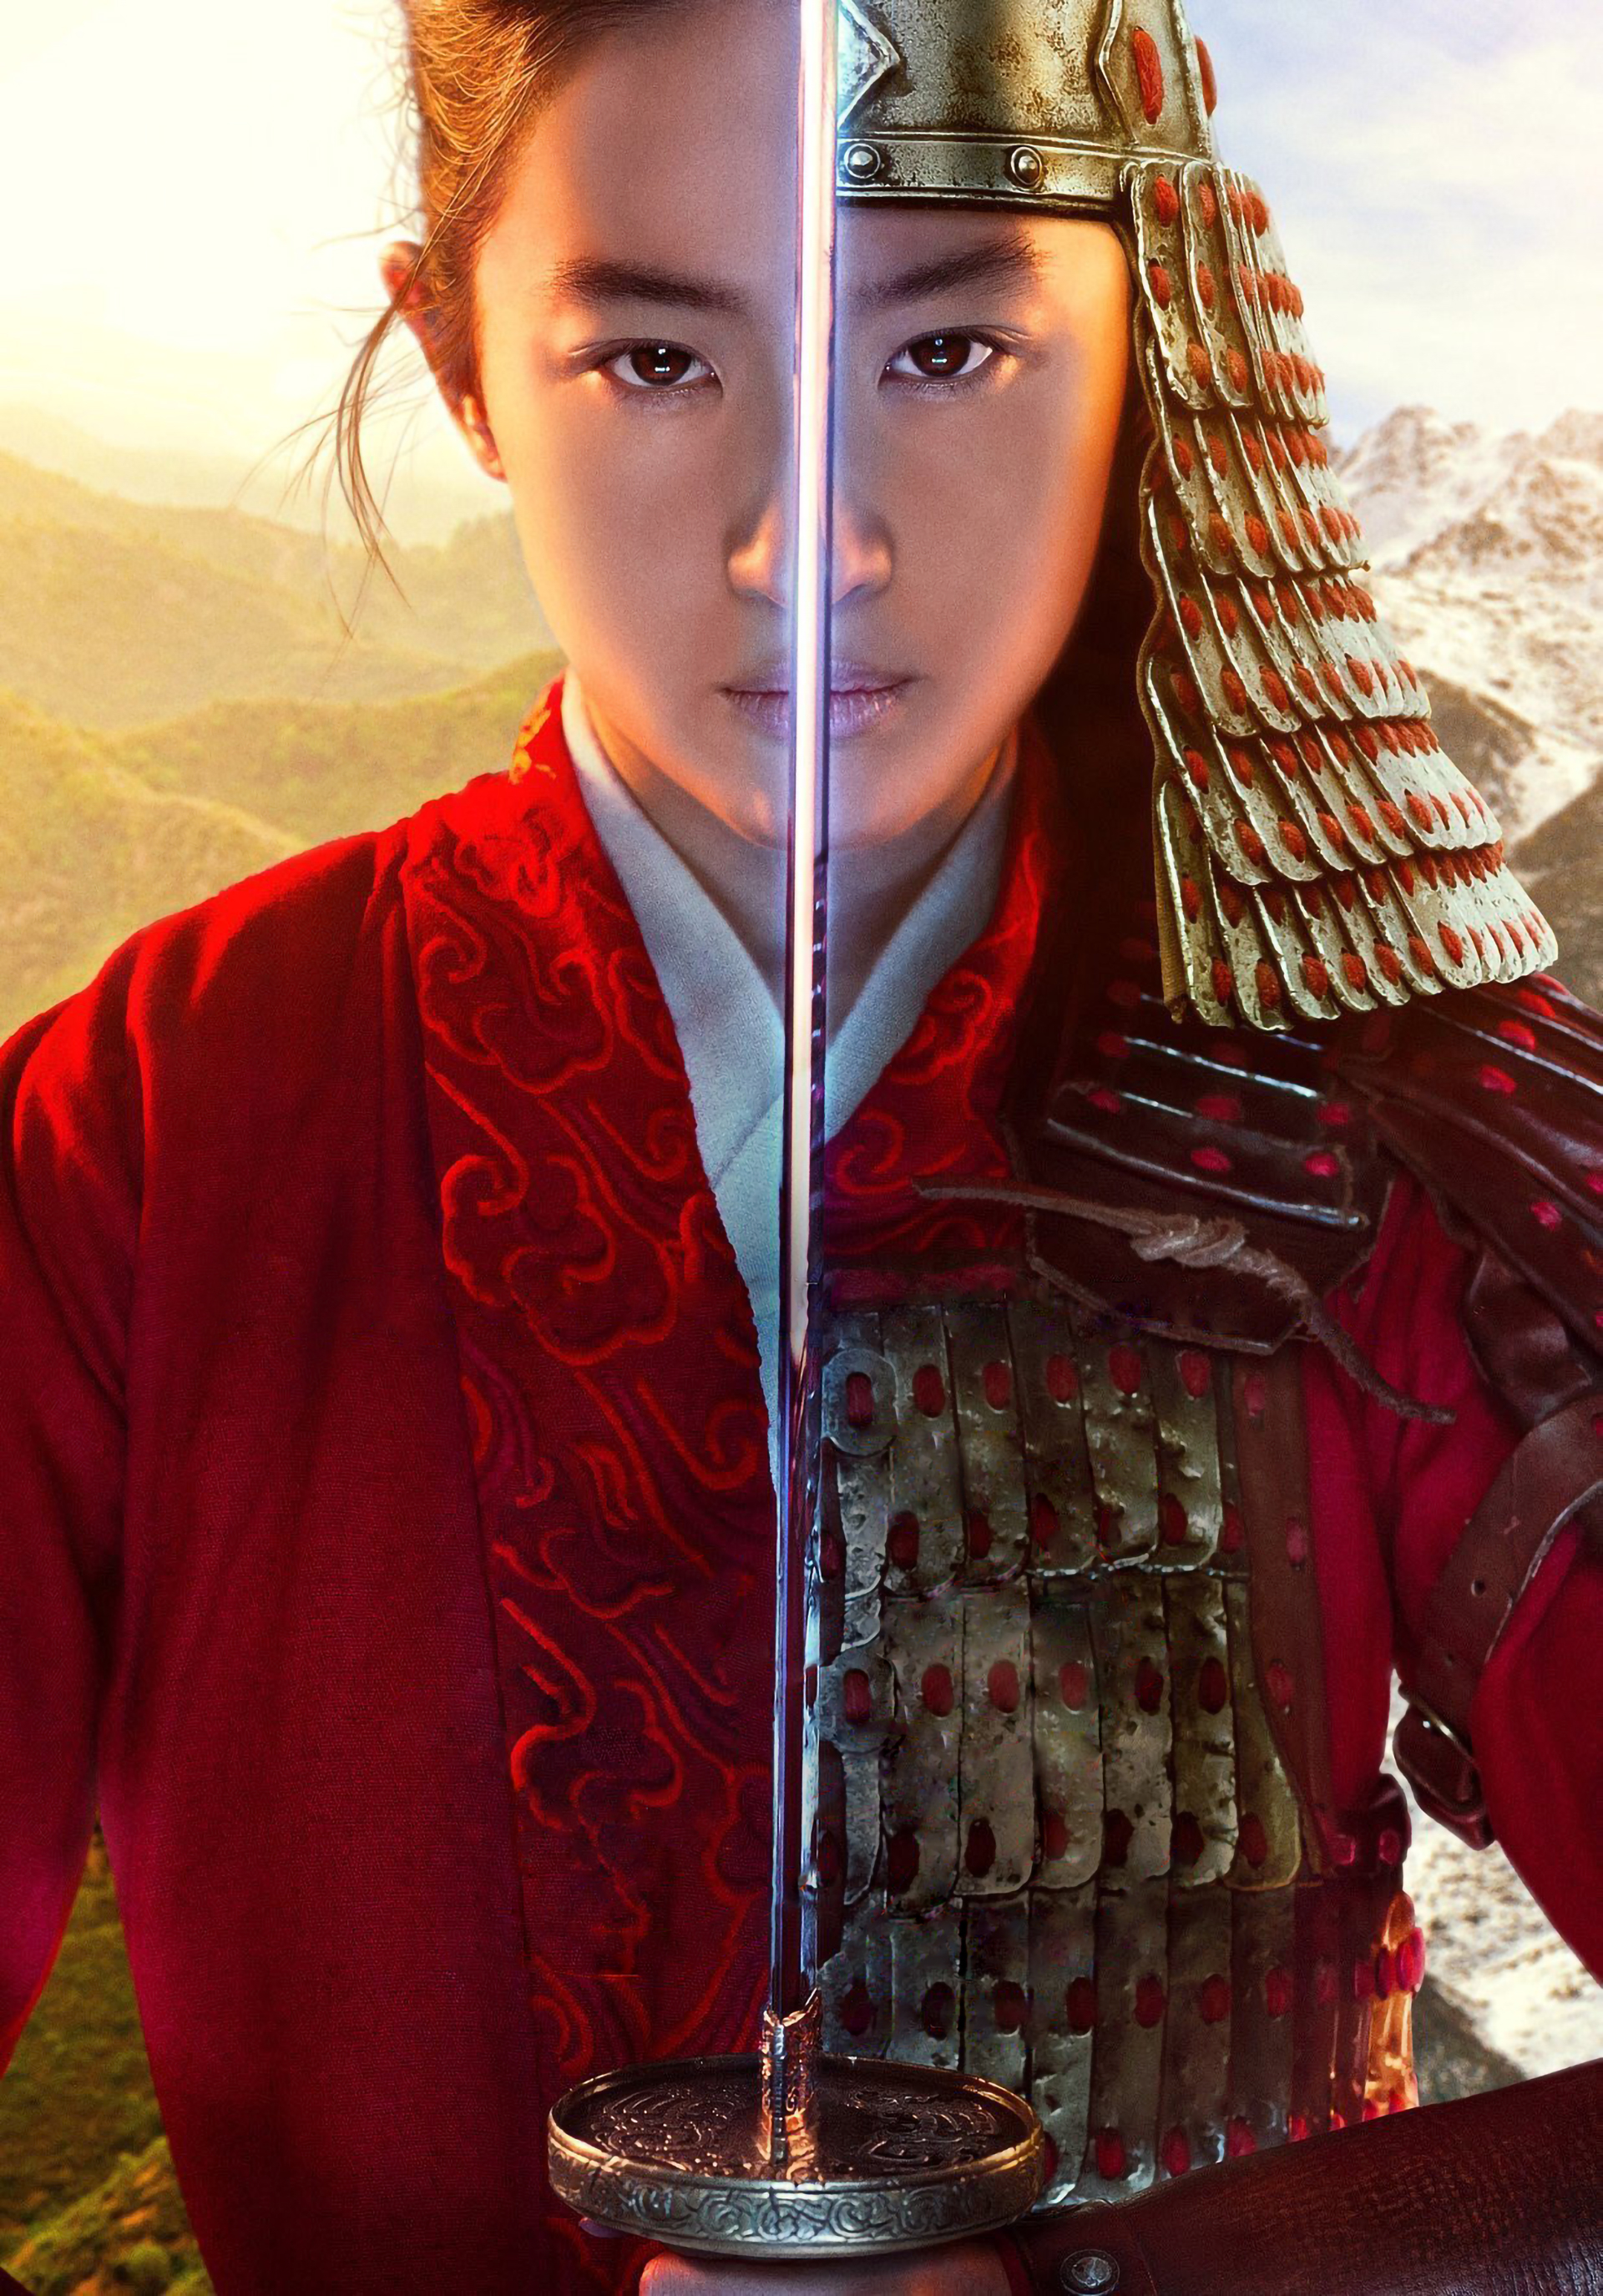 Mulan turns 20: Why the live-action version should stay